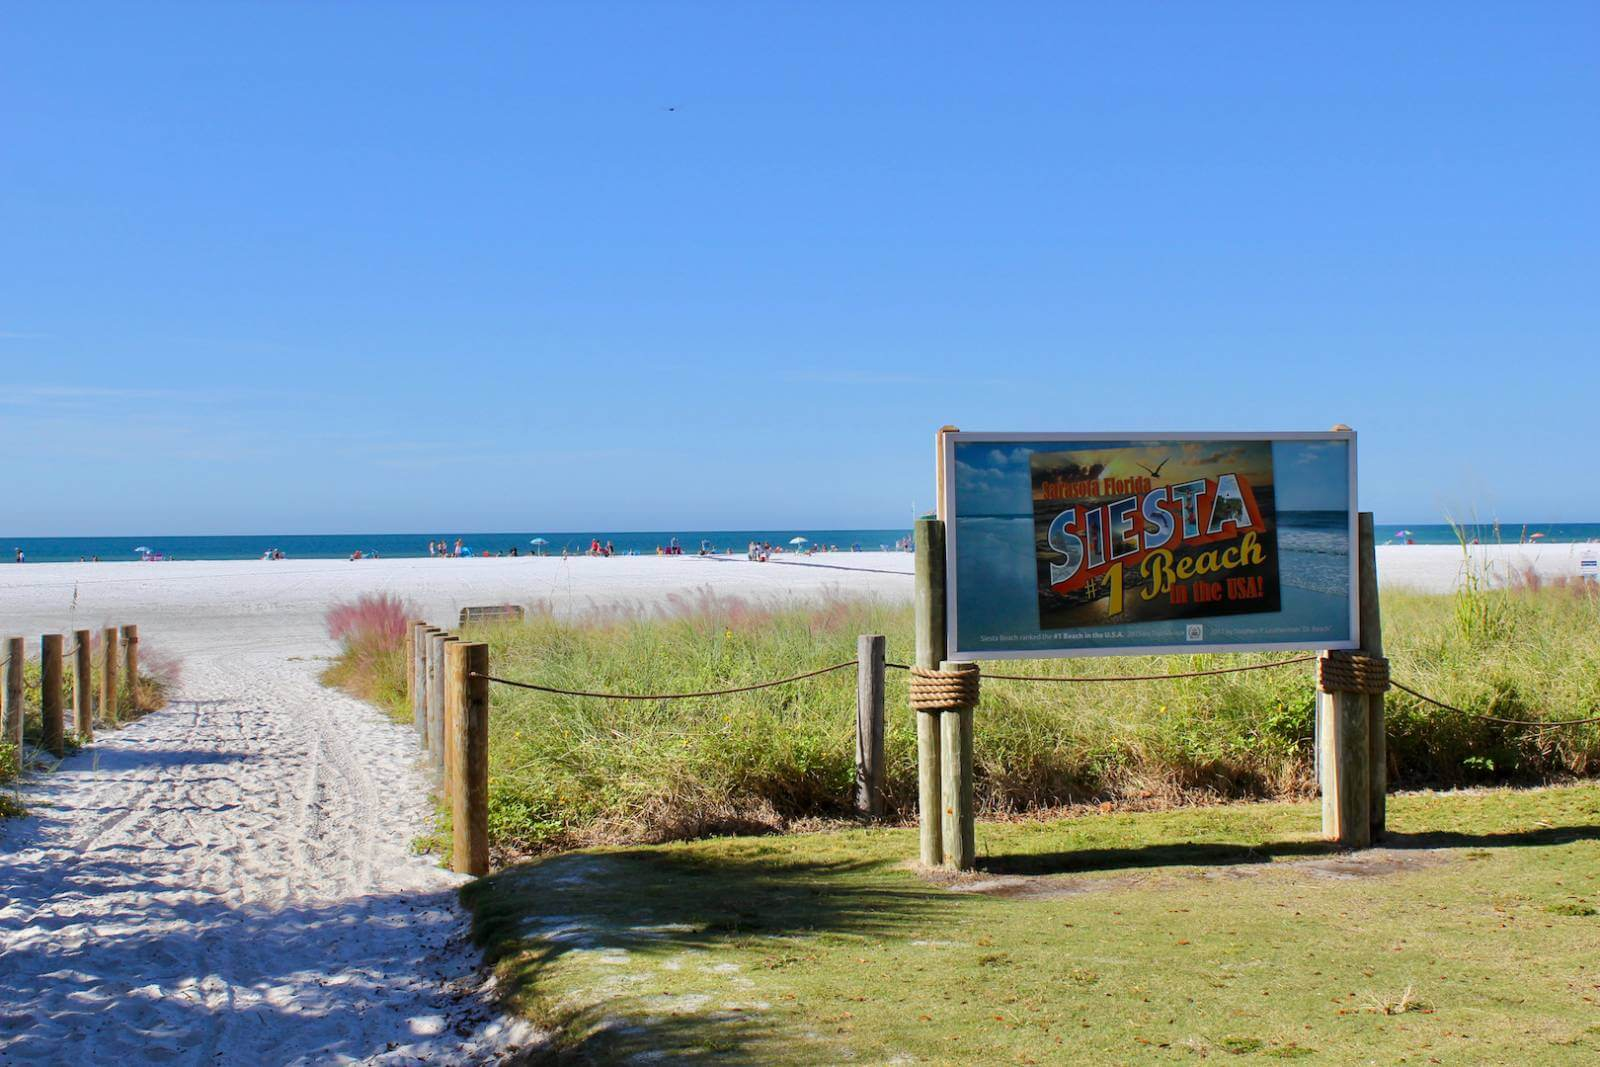 Siesta Beach, Siesta Key Sarasota, Florida USA. Must Do Visitor Guides, MustDo.com, Photo by Nita Ettinger